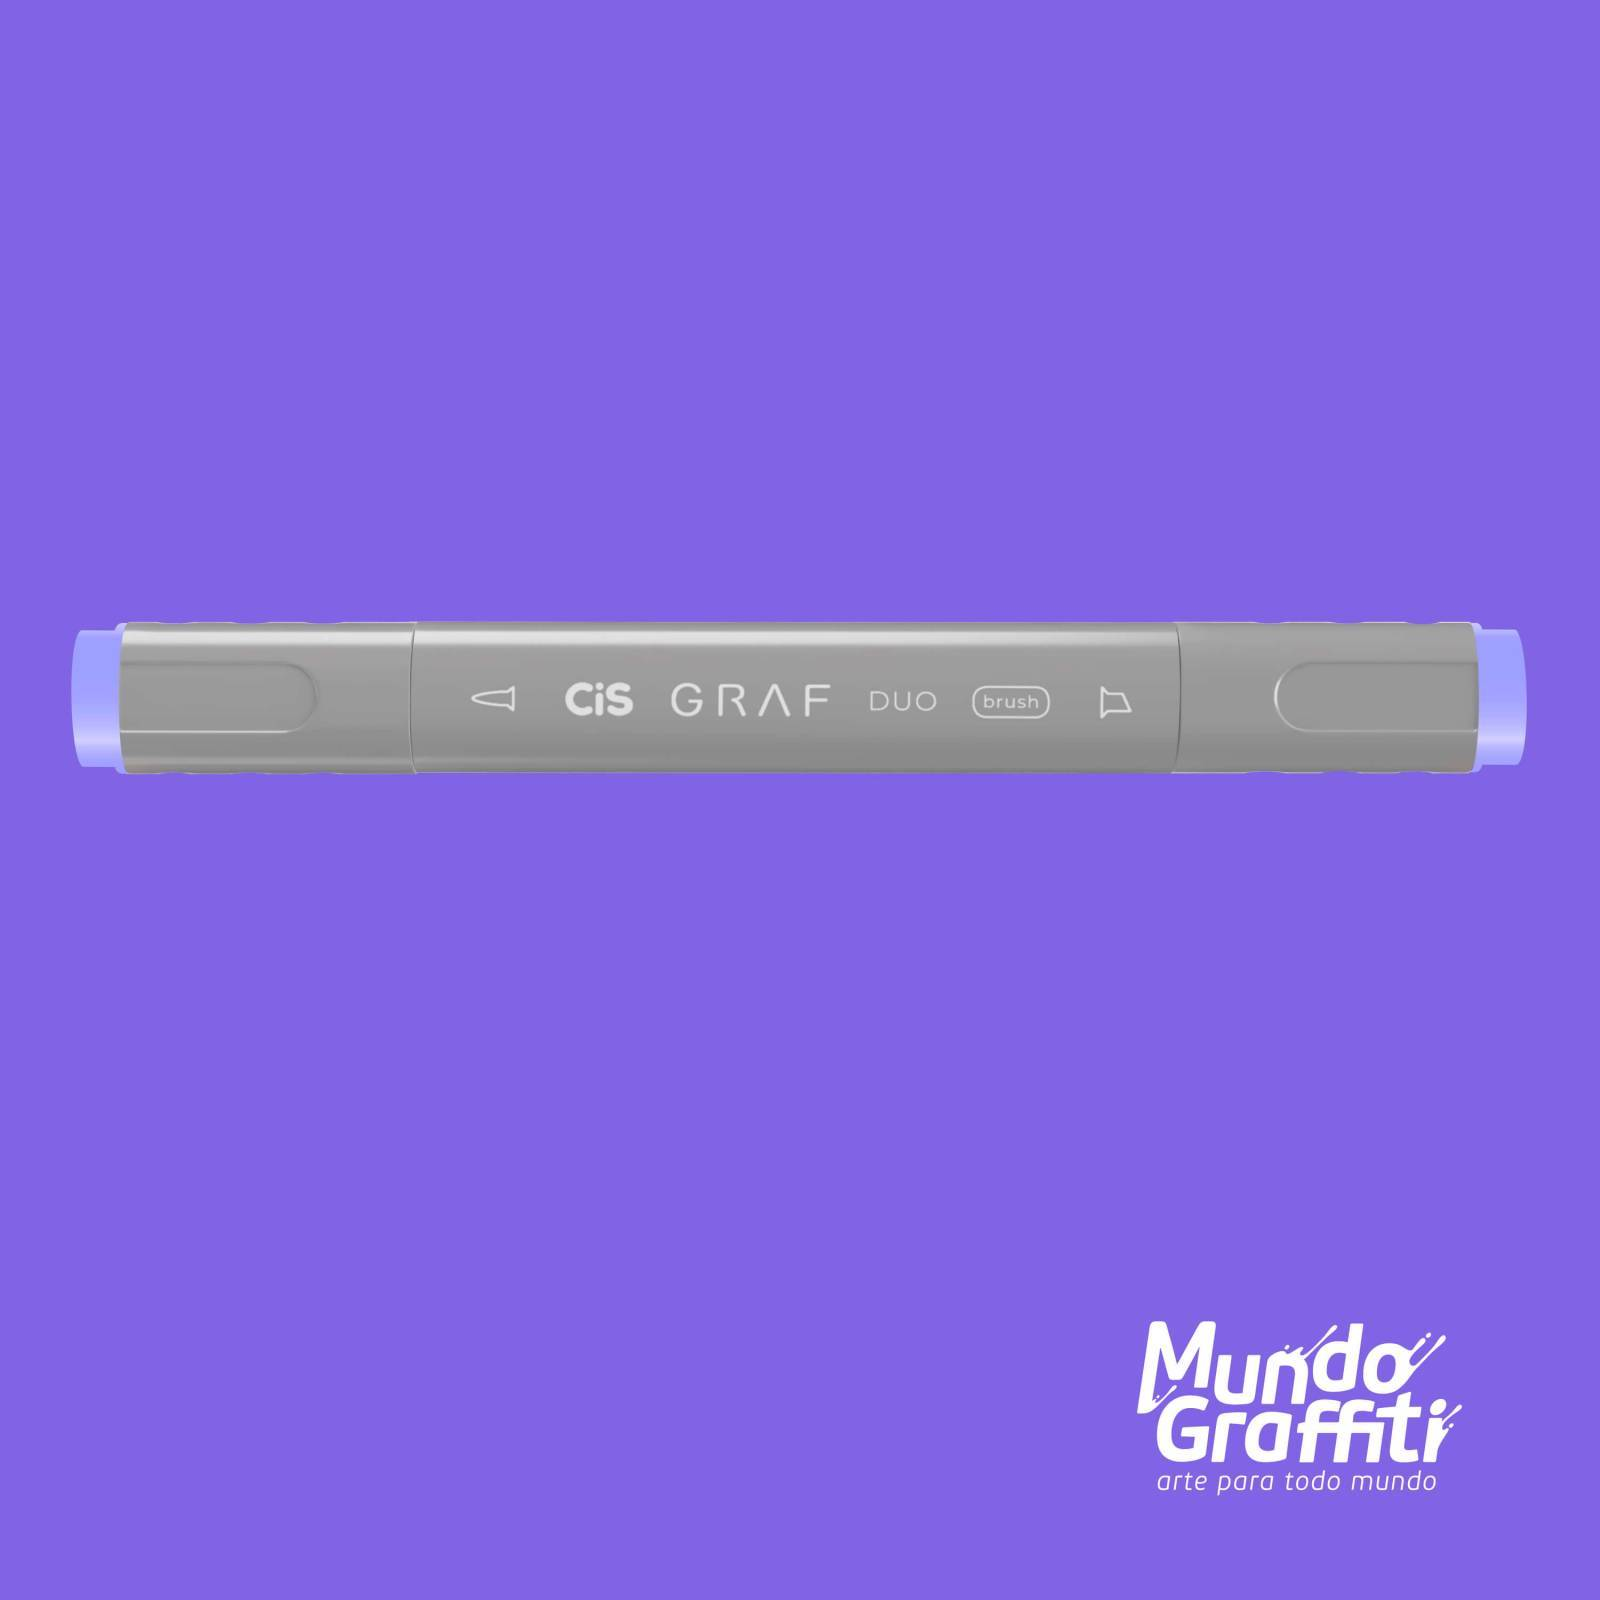 Marcador Cis Graf Duo Brush Pale Lavender 145 - Mundo Graffiti